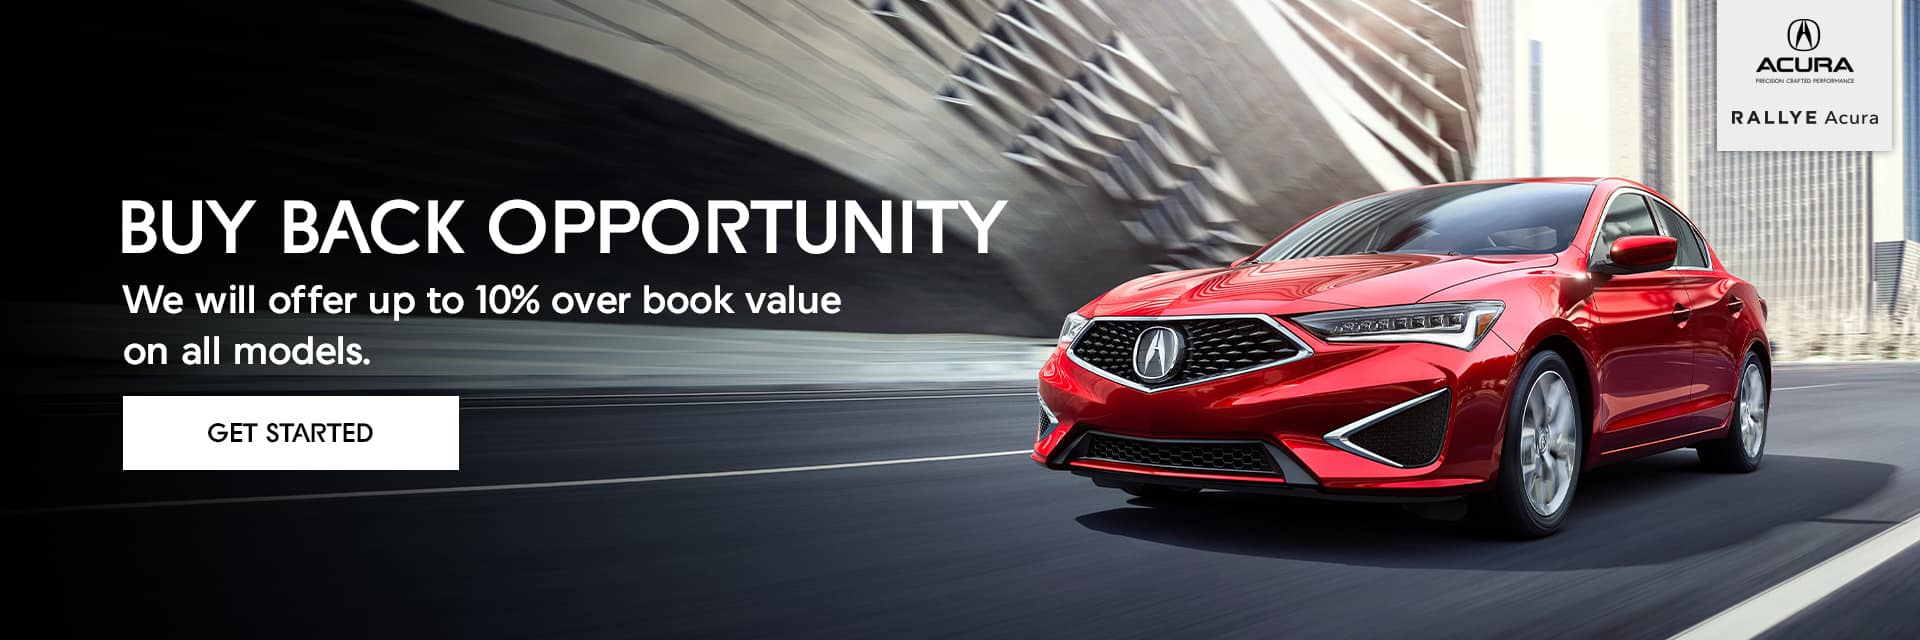 Buy Back Opportunity, We will offer up to 10% over book value on all models.